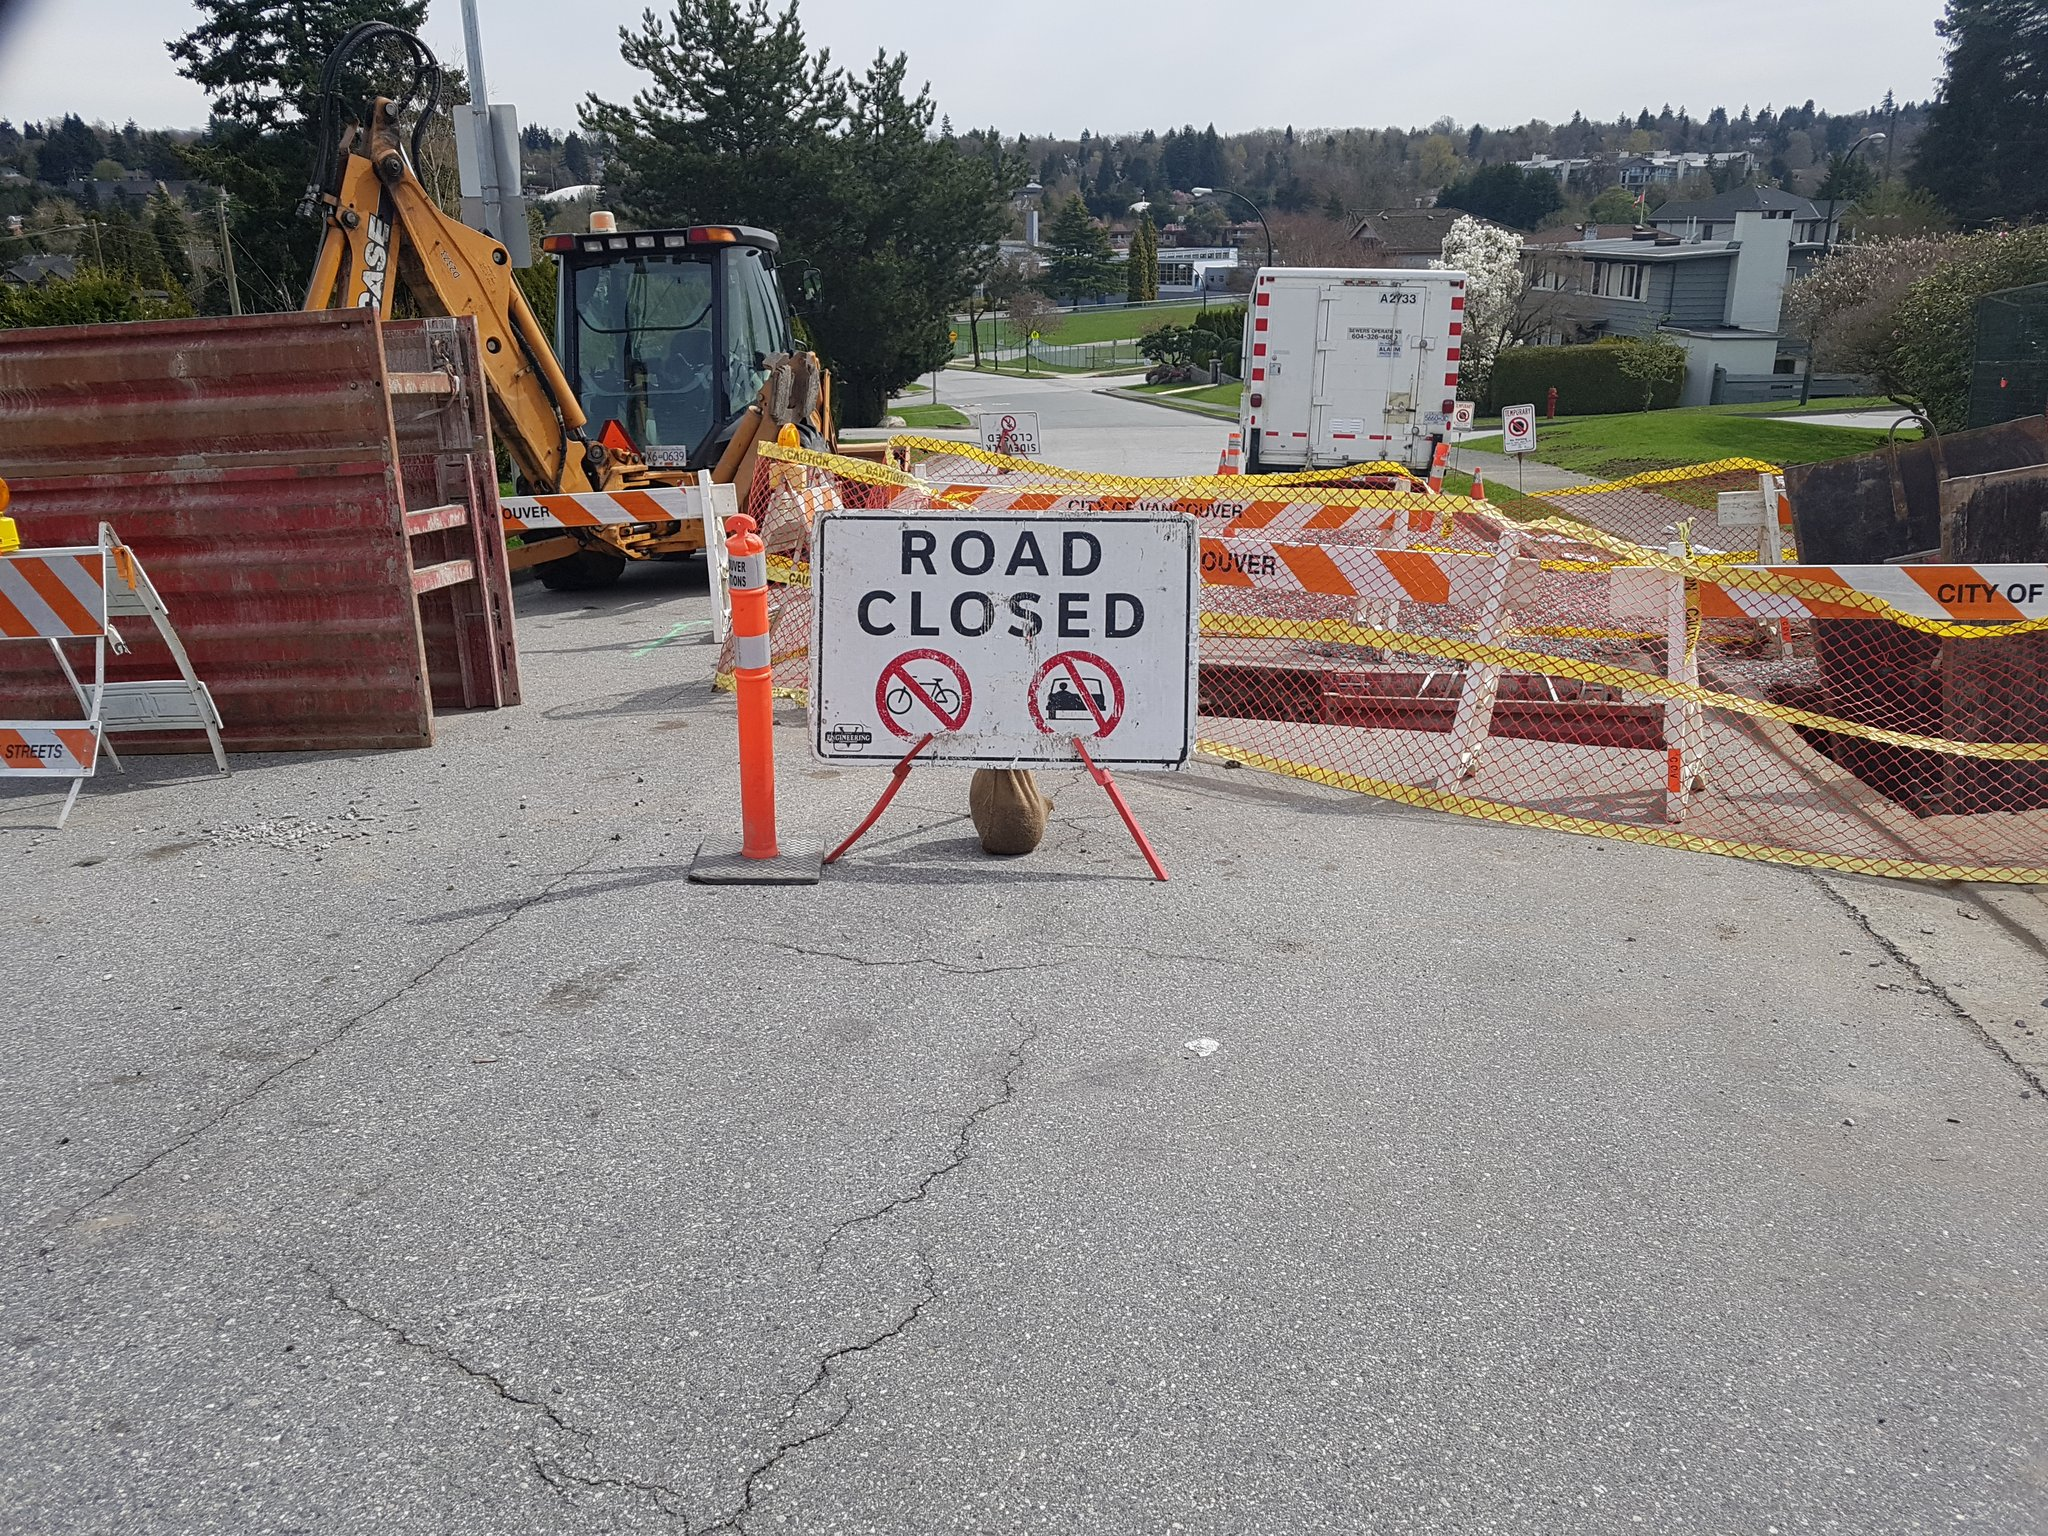 Even their road closed signs acknowledge that bikes are users of the roads too #yyjbike https://t.co/Yr49JR76sW